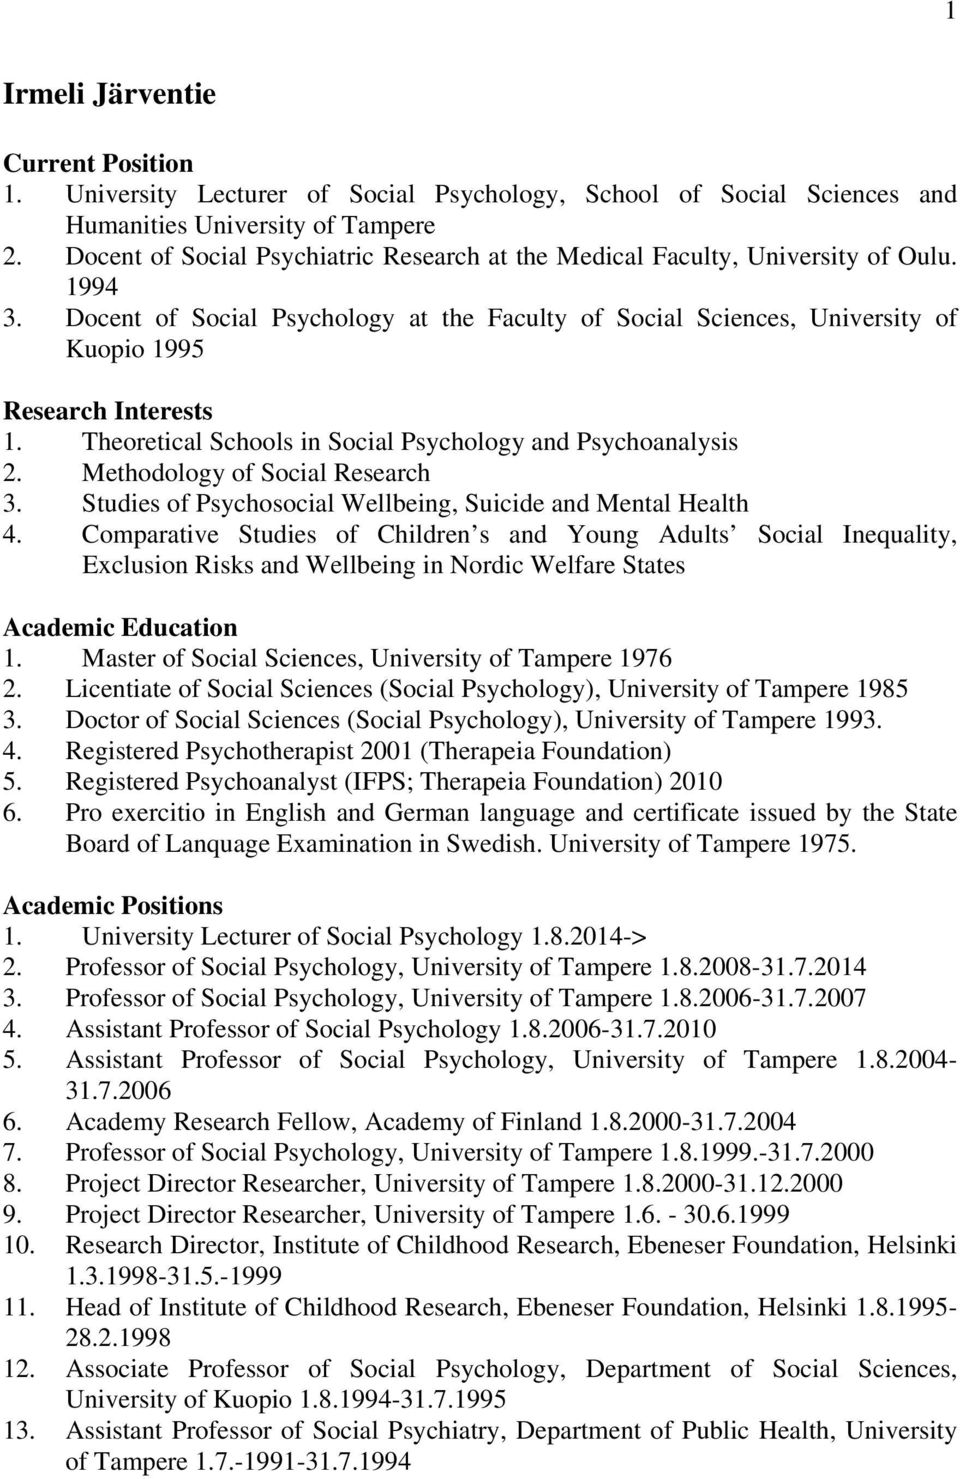 Theoretical Schools in Social Psychology and Psychoanalysis 2. Methodology of Social Research 3. Studies of Psychosocial Wellbeing, Suicide and Mental Health 4.